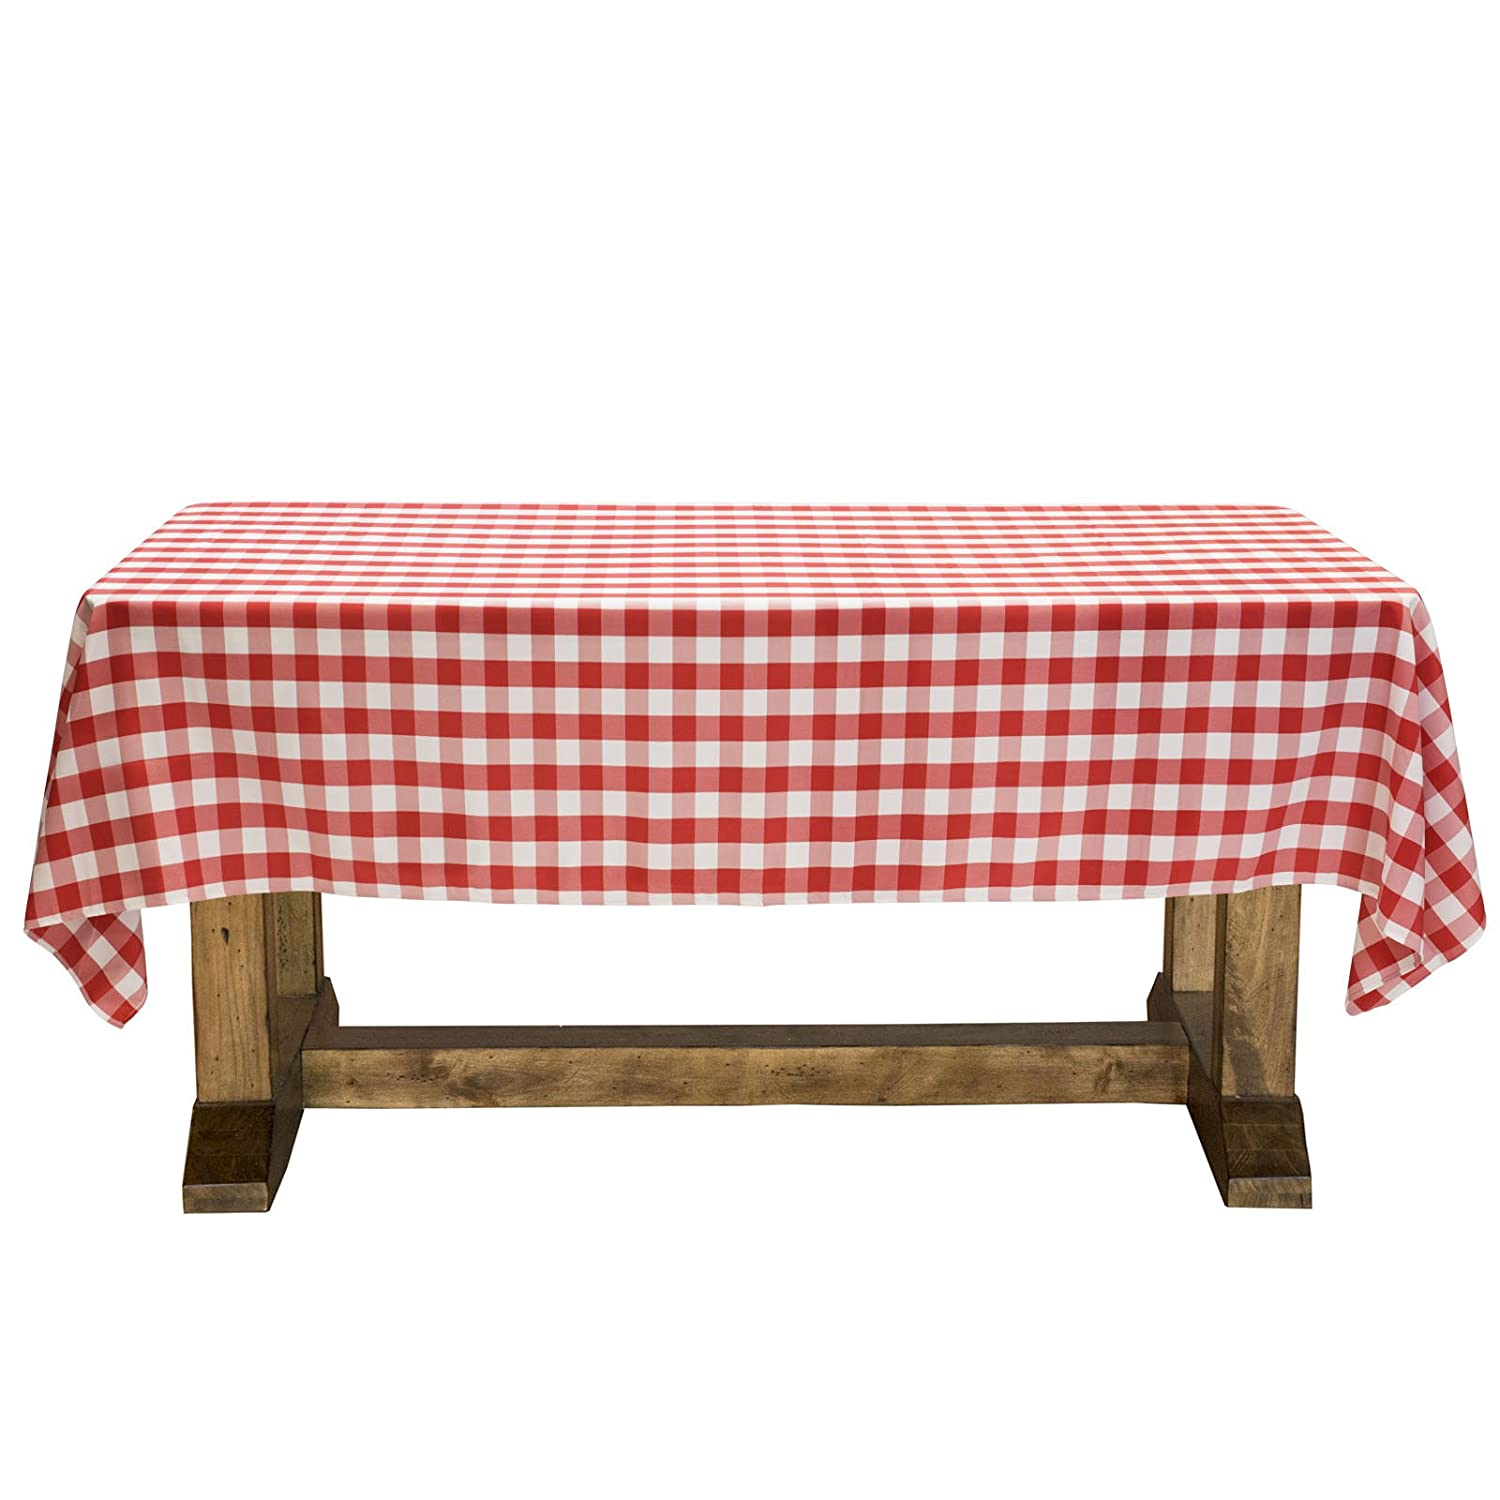 """Lann's Linens - 60"""" x 126"""" Premium Checkered Tablecloth - Rectangular Polyester Fabric Picnic Table Cover - Red & White Gingham Cloth"""